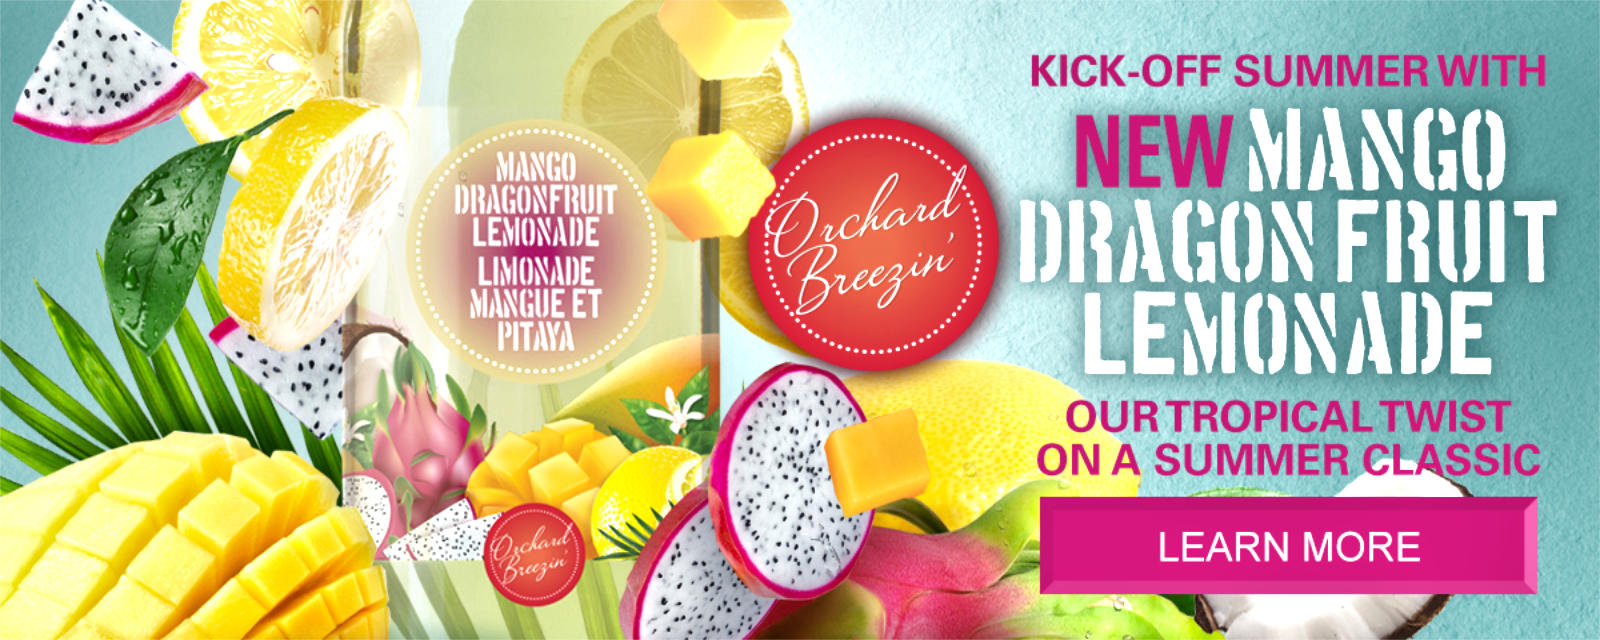 Orchard Breezin' Mango Dragon Fruit Lemonade